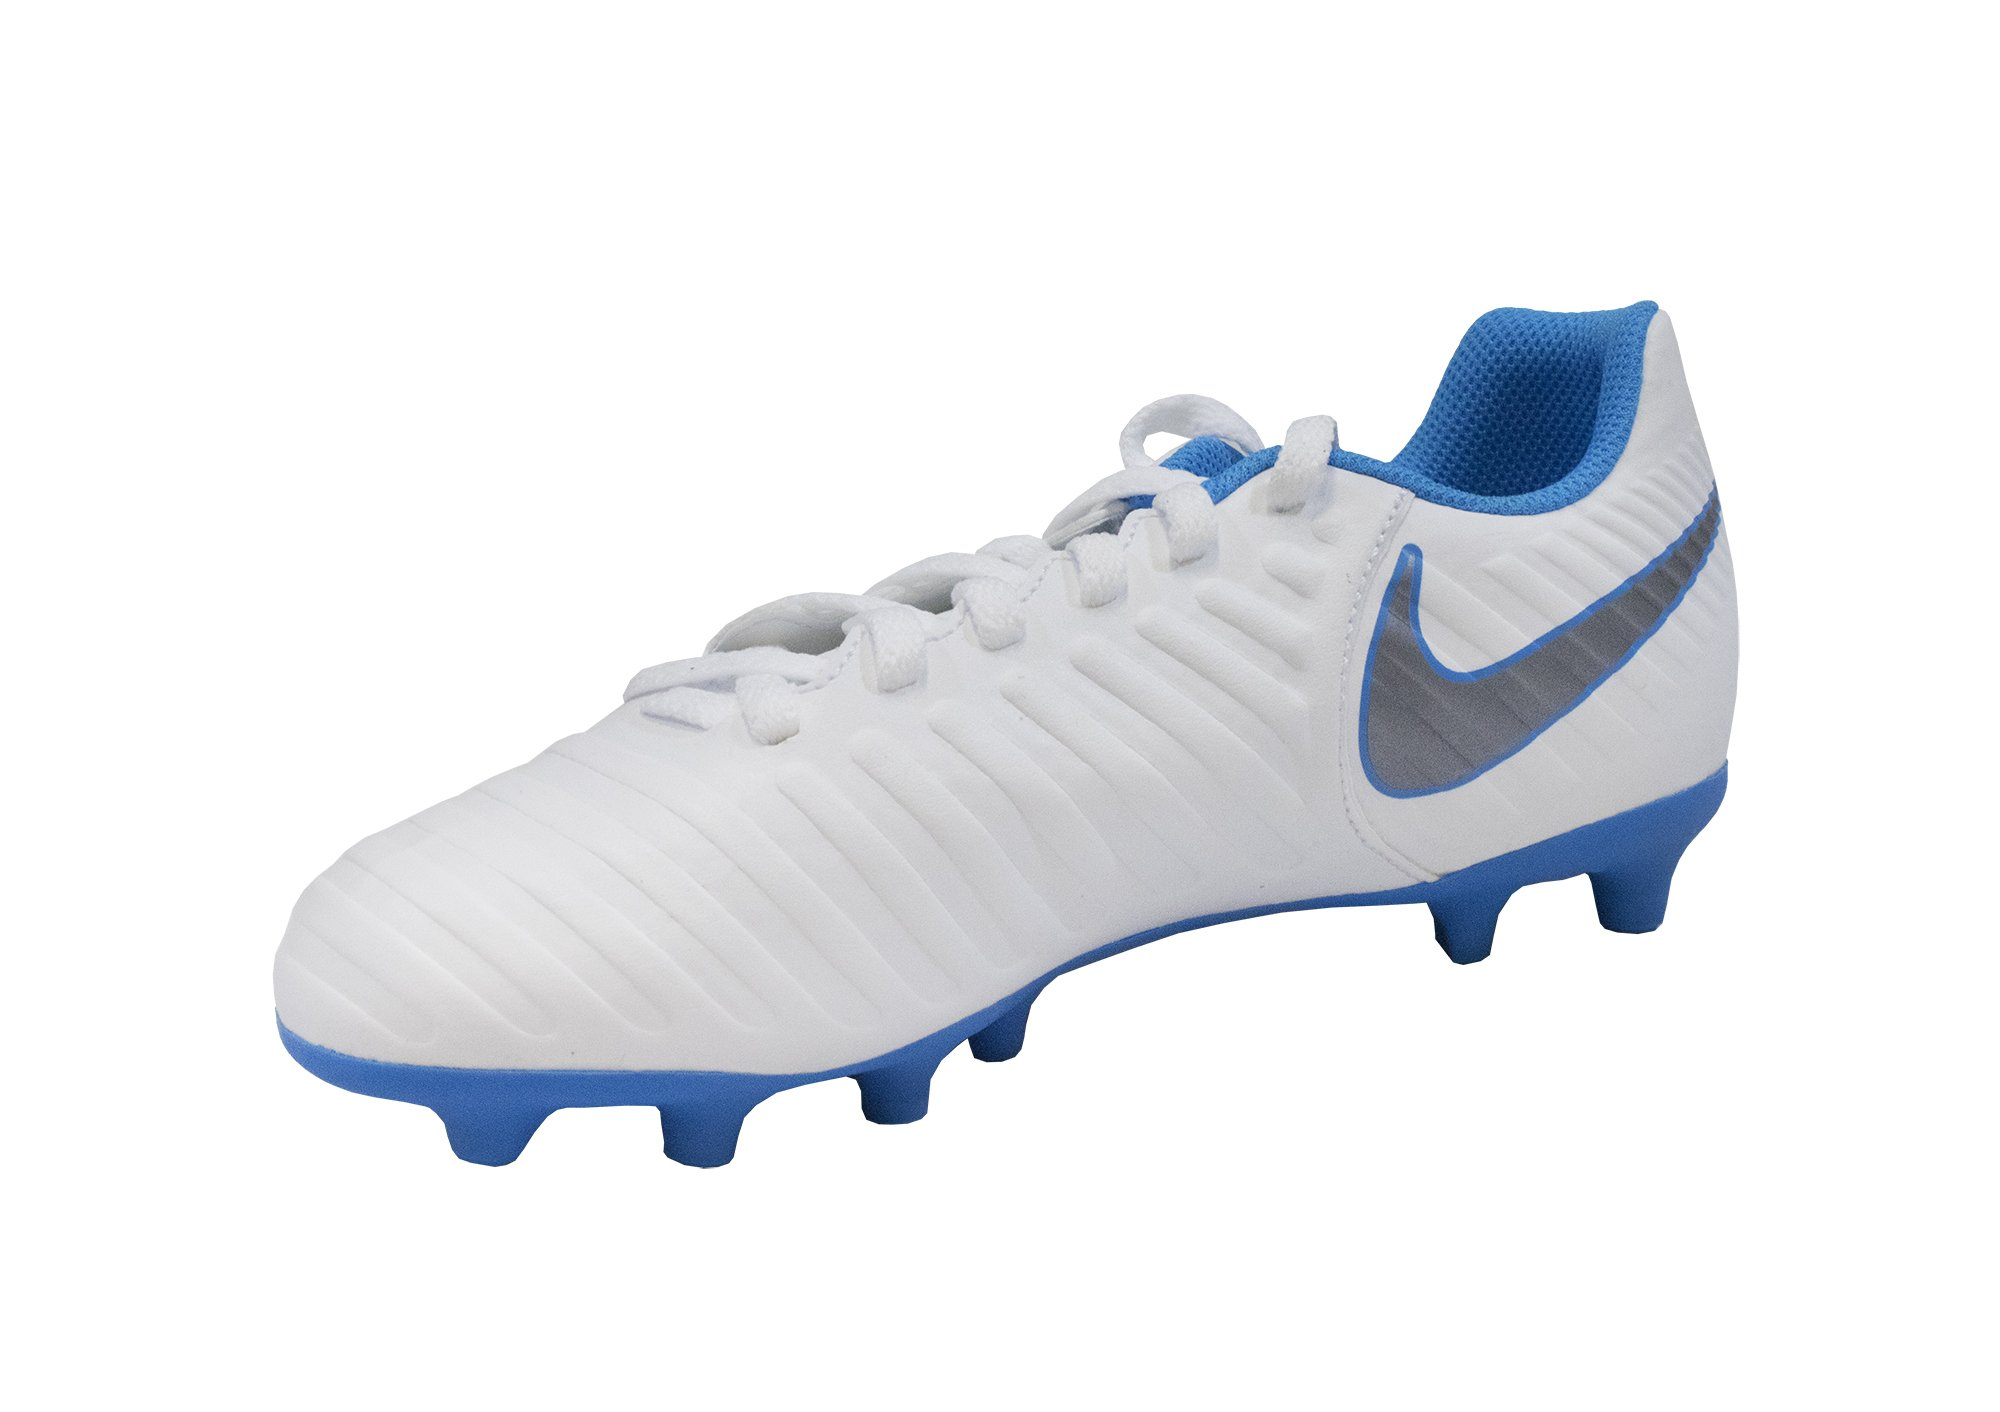 04d201172 Galleon - Nike Jr. Legend 7 Club (FG) Firm Ground Soccer Cleat  White Metallic Cool Grey Blue Hero Size 3 M US